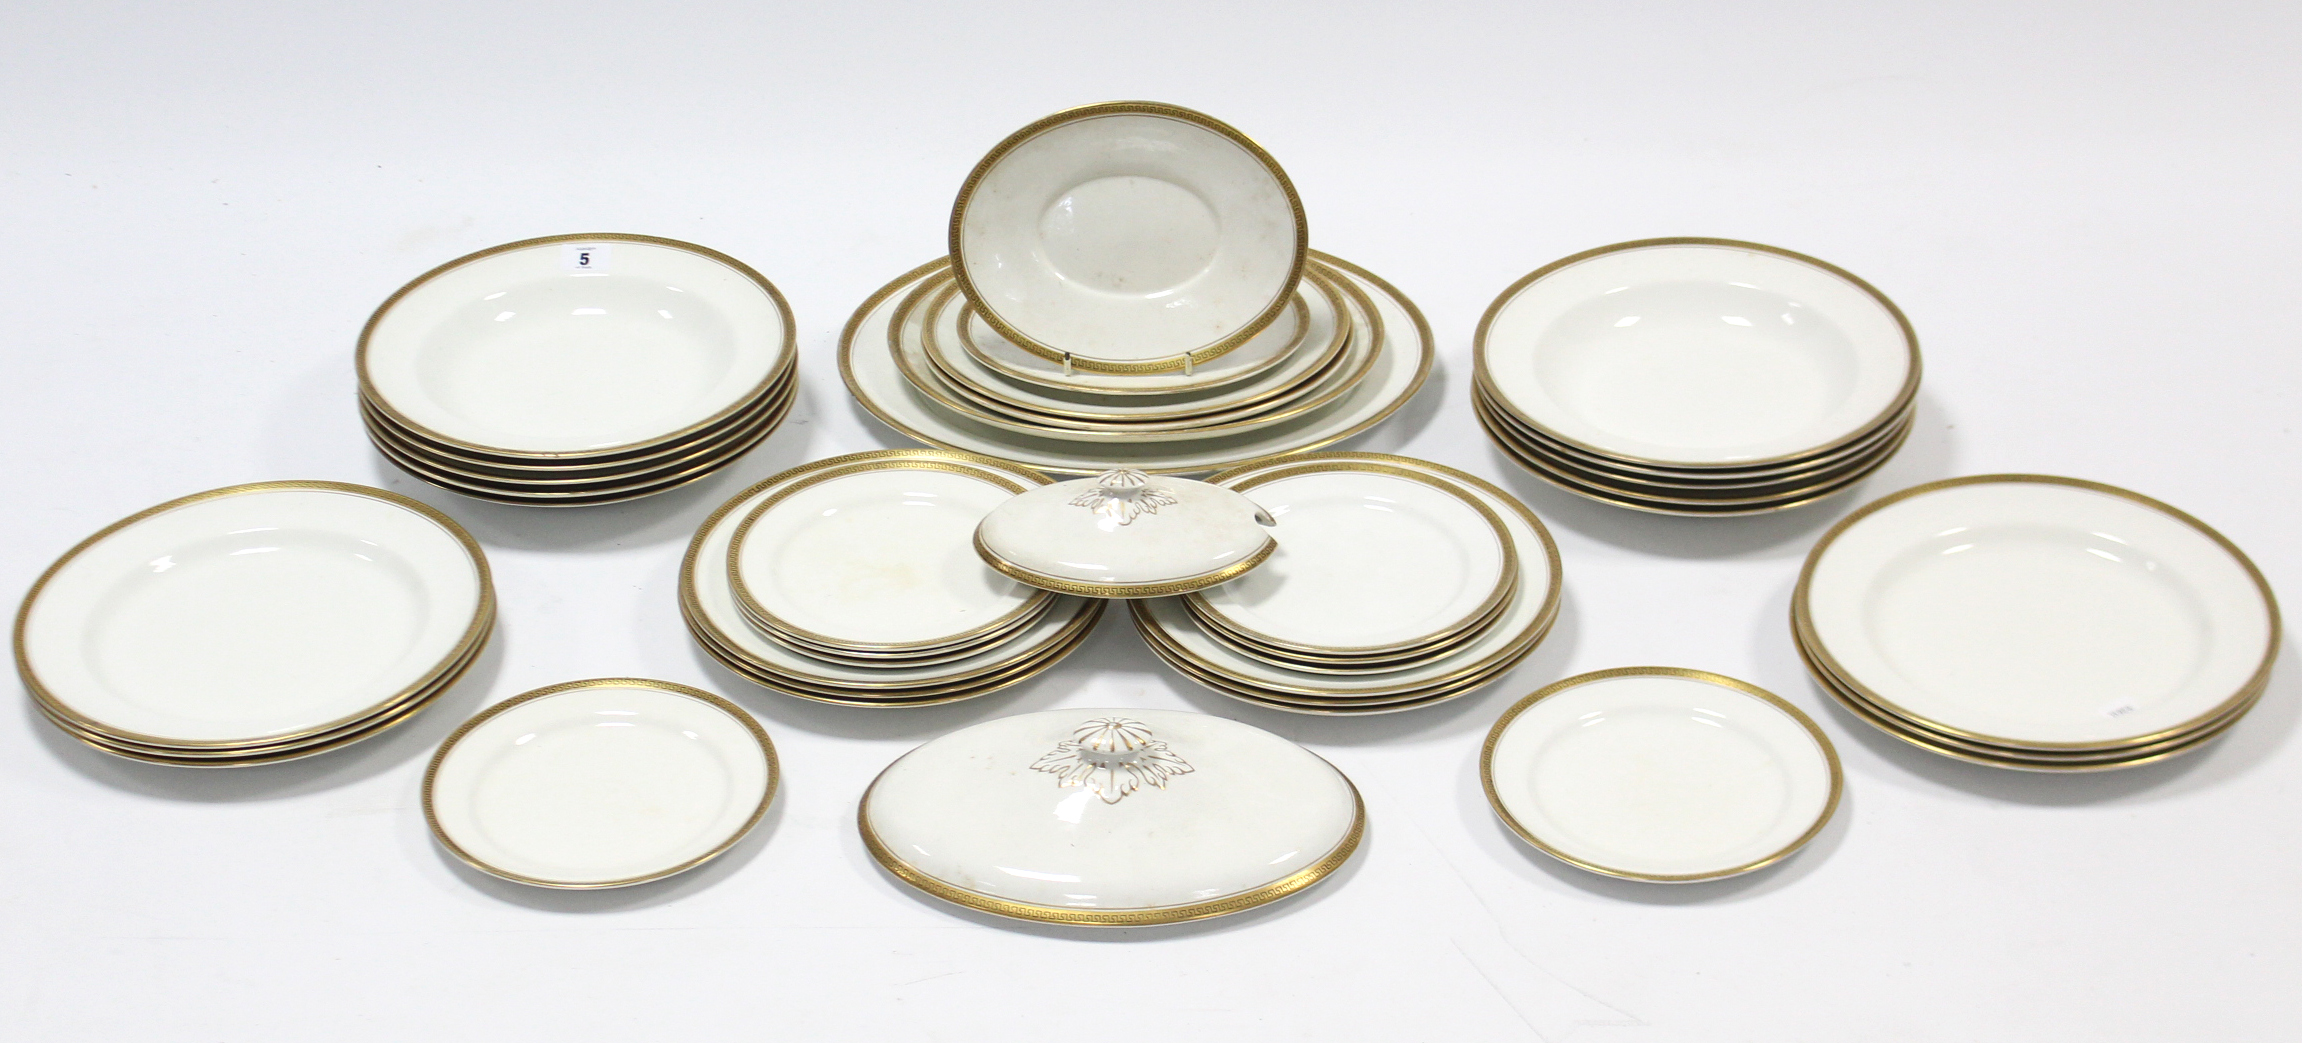 Lot 62 - A Bishop china thirty-four piece part dinner service of white ground & with gold rims, part w.a.f.